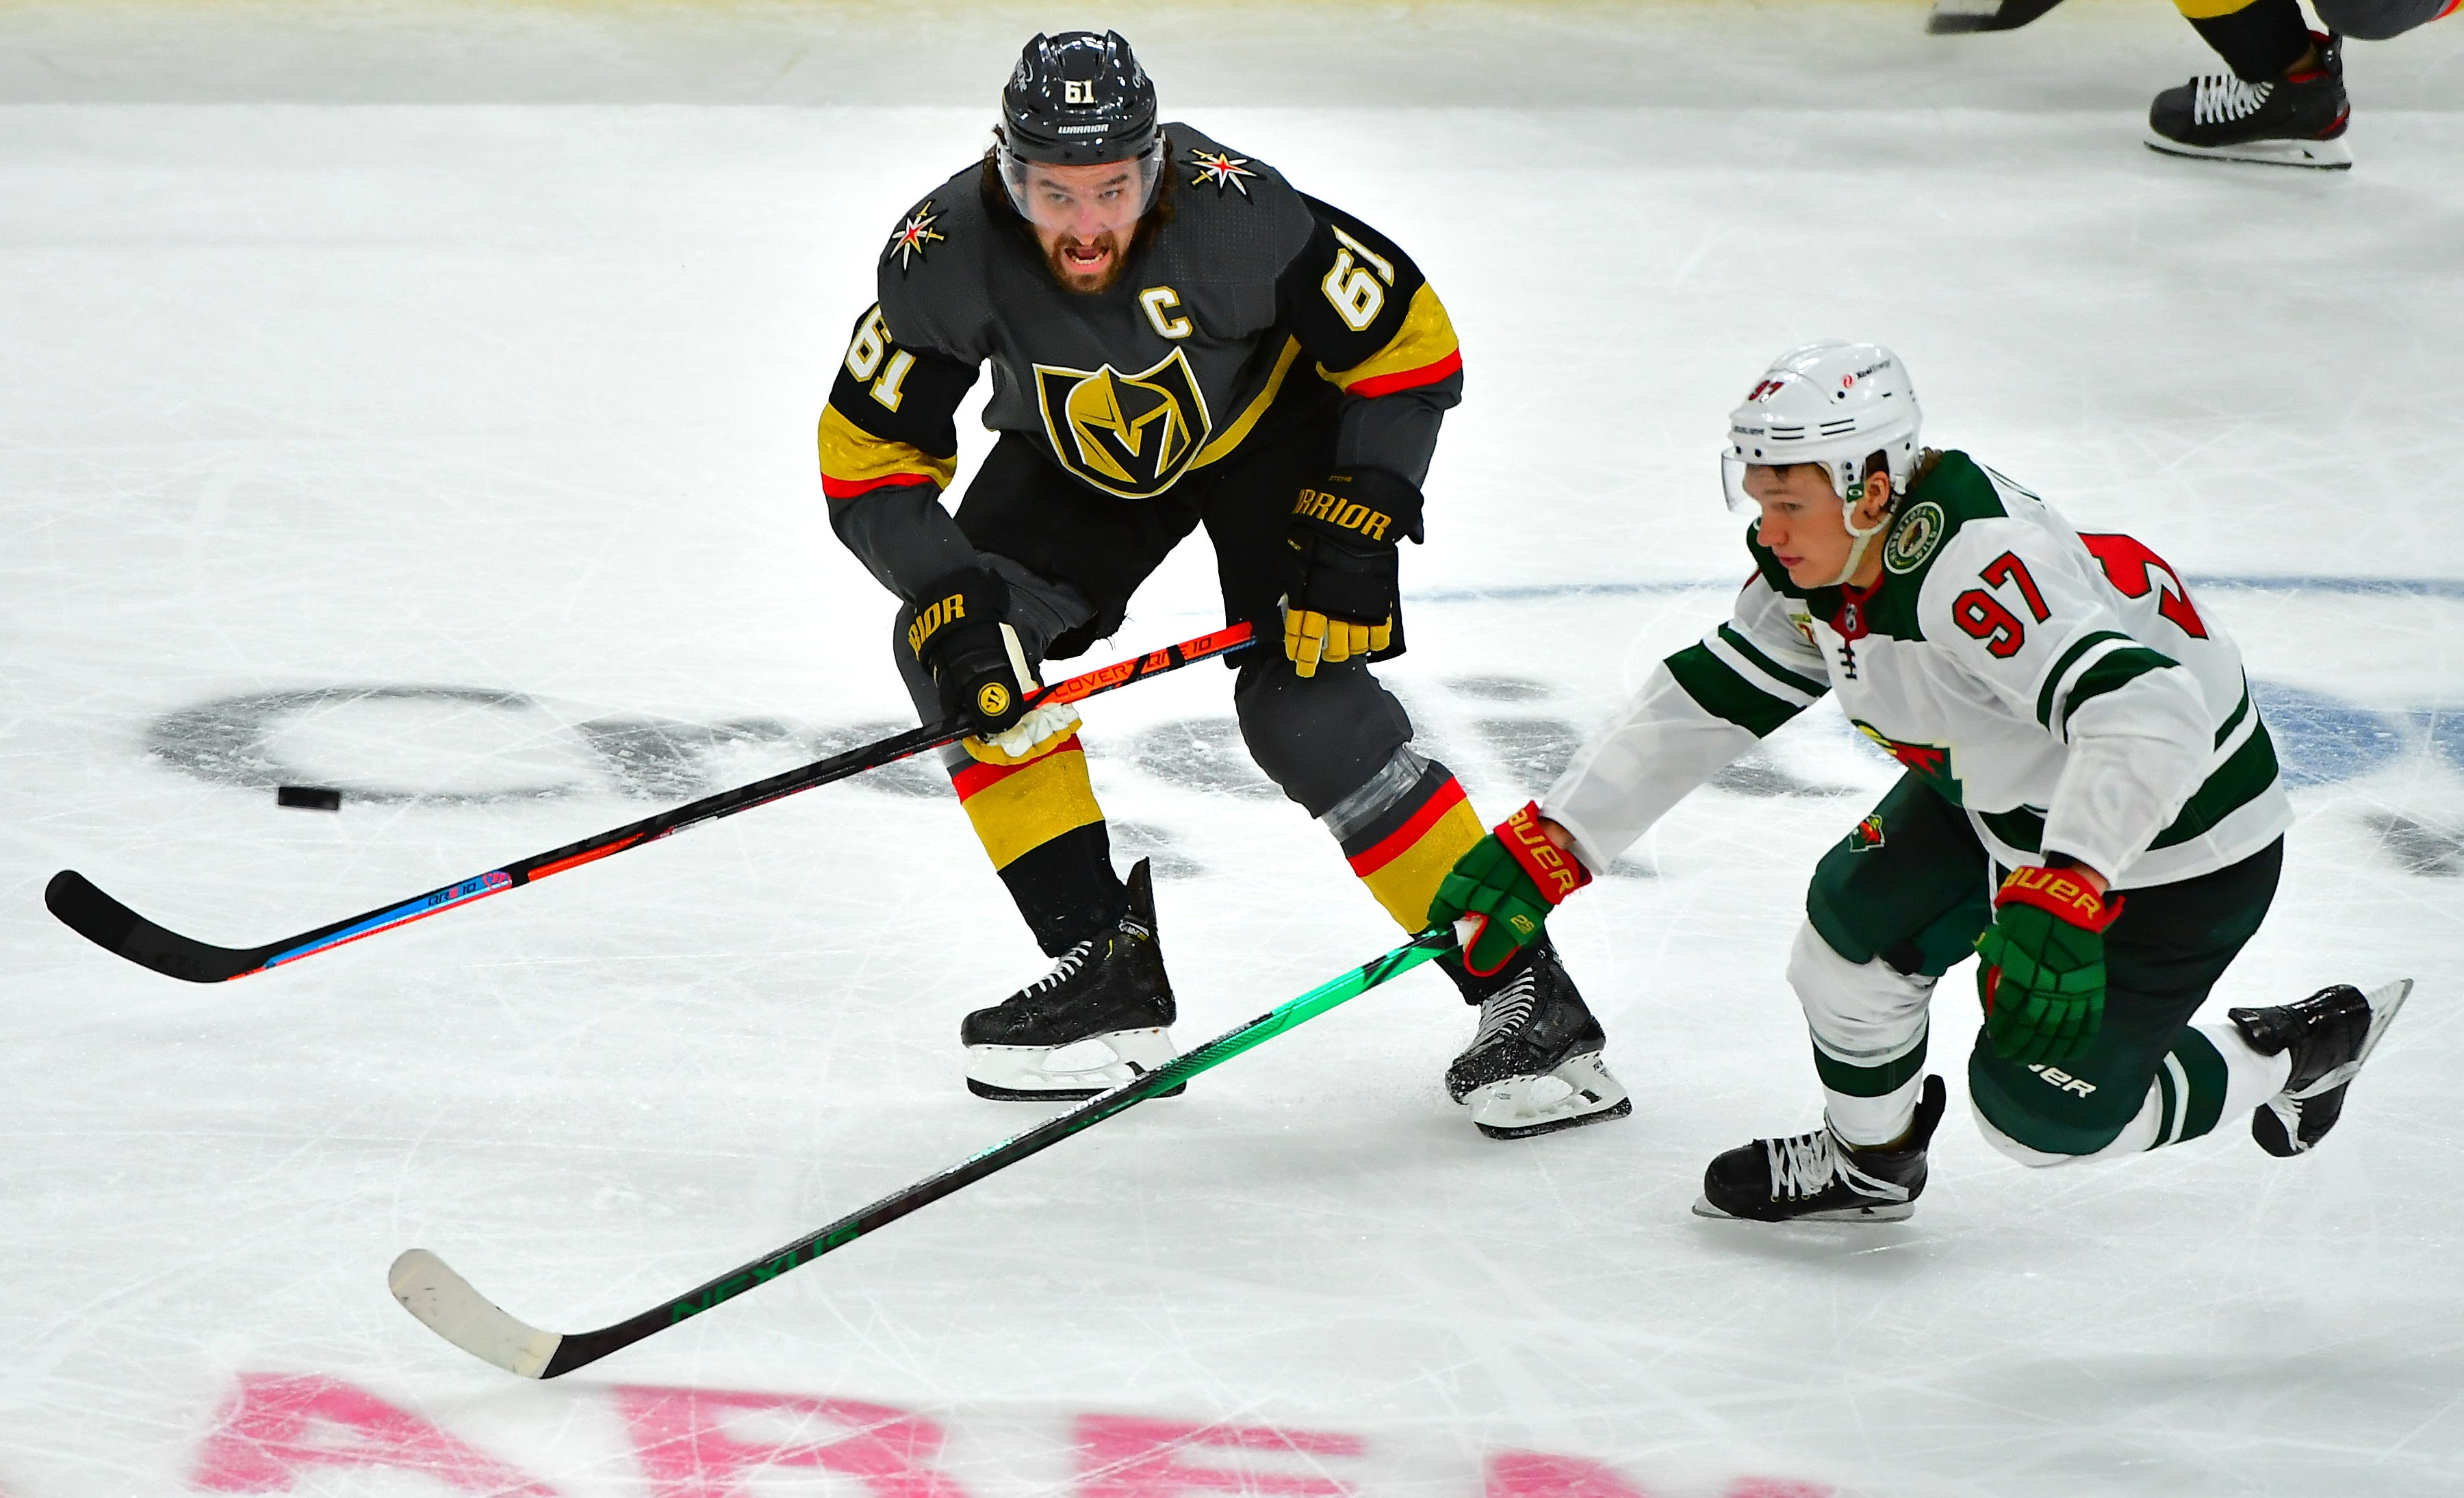 NHL playoff predictions: Who wins Game 7 between Minnesota Wild and Vegas Golden Knights?